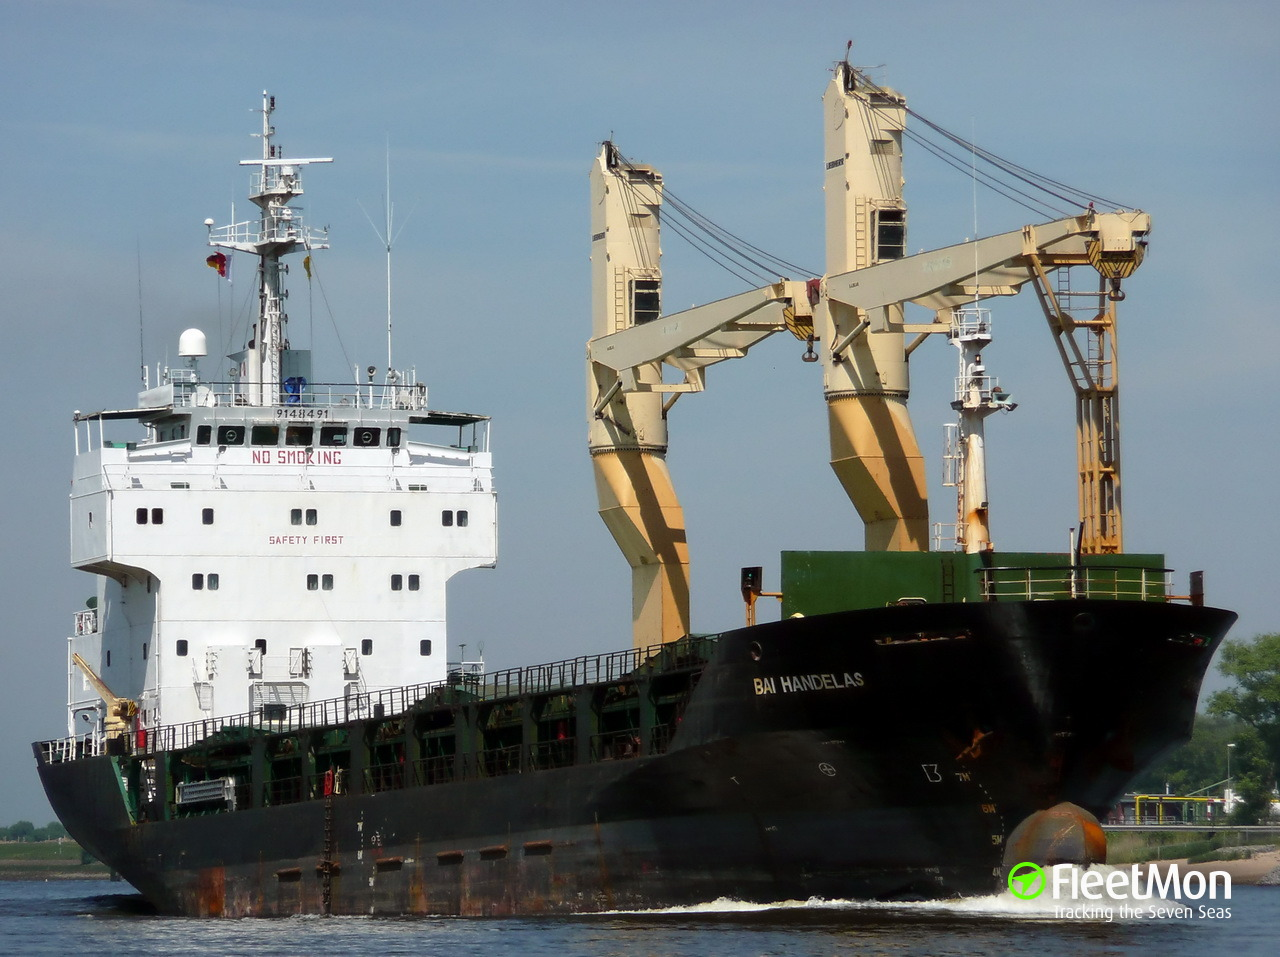 General cargo vessel Tuna 1 shelled in Libyan waters, 1 dead